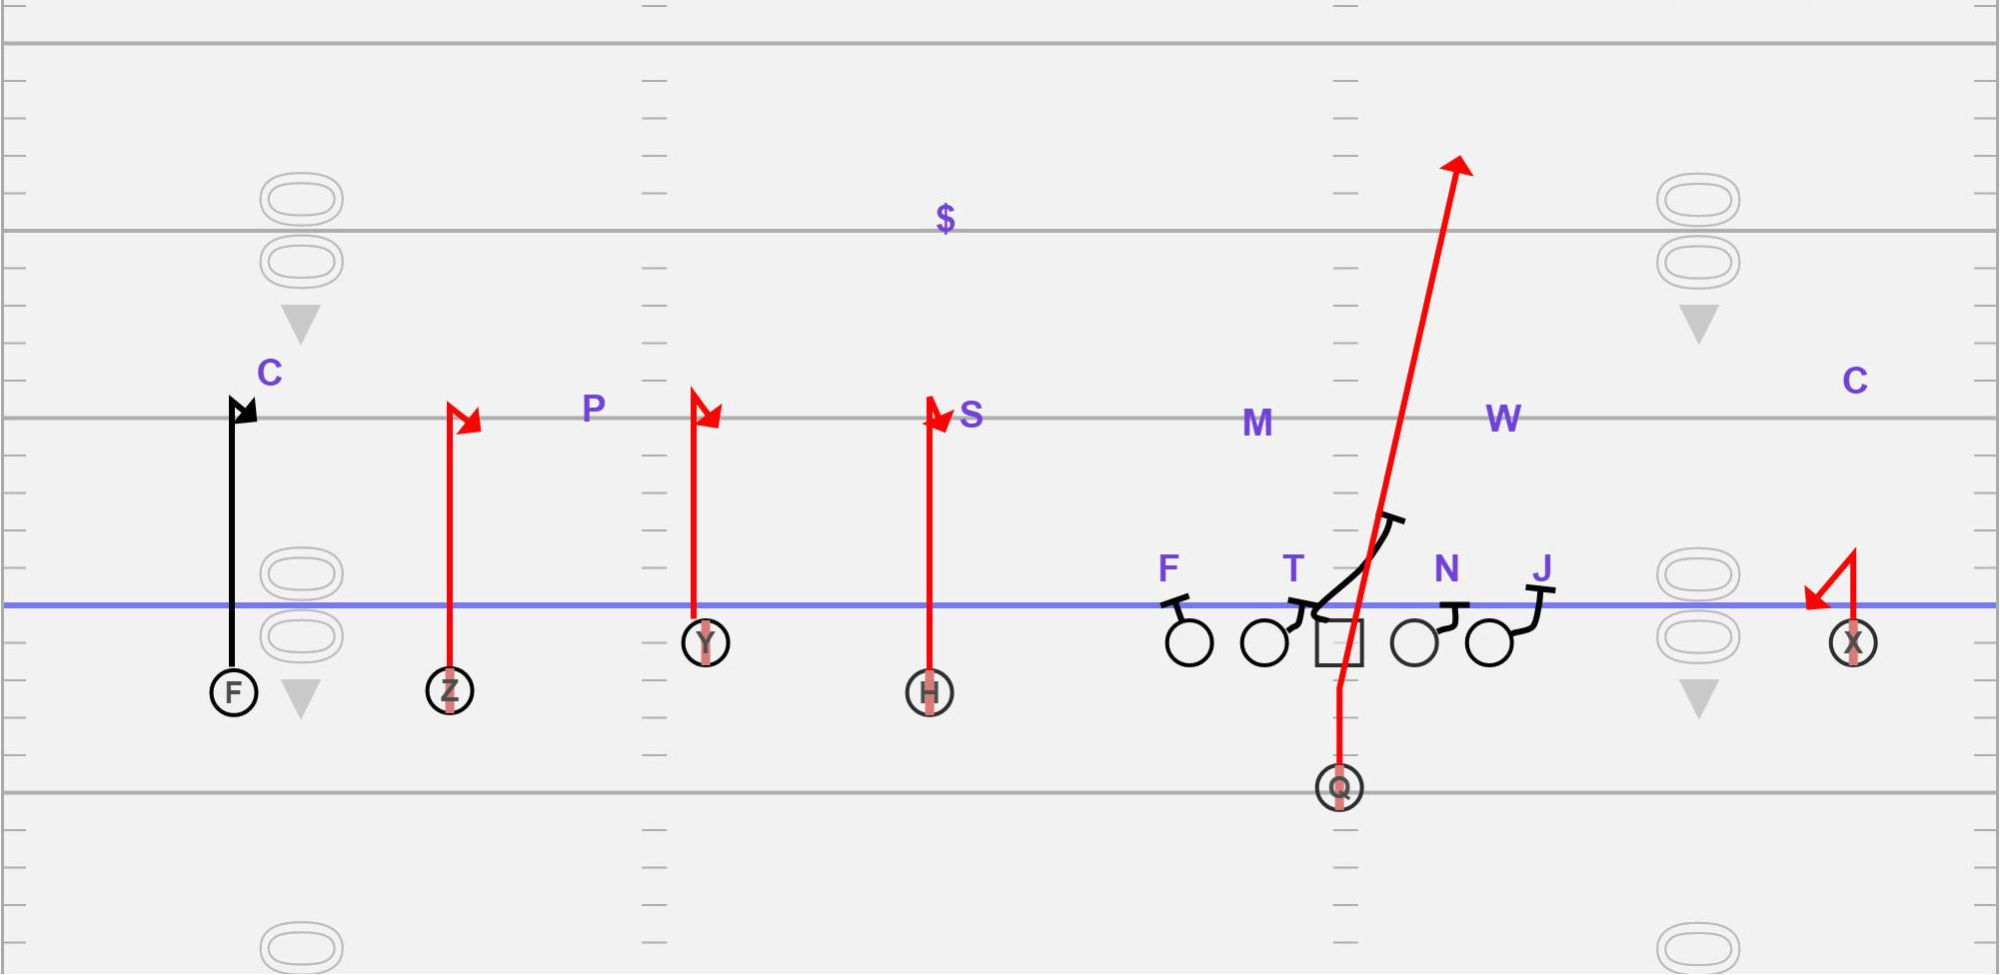 hight resolution of we like to run hitches and or screens to either side with a presnap look by the qb we can also run a fade to the single receiver side and a quick gameplay